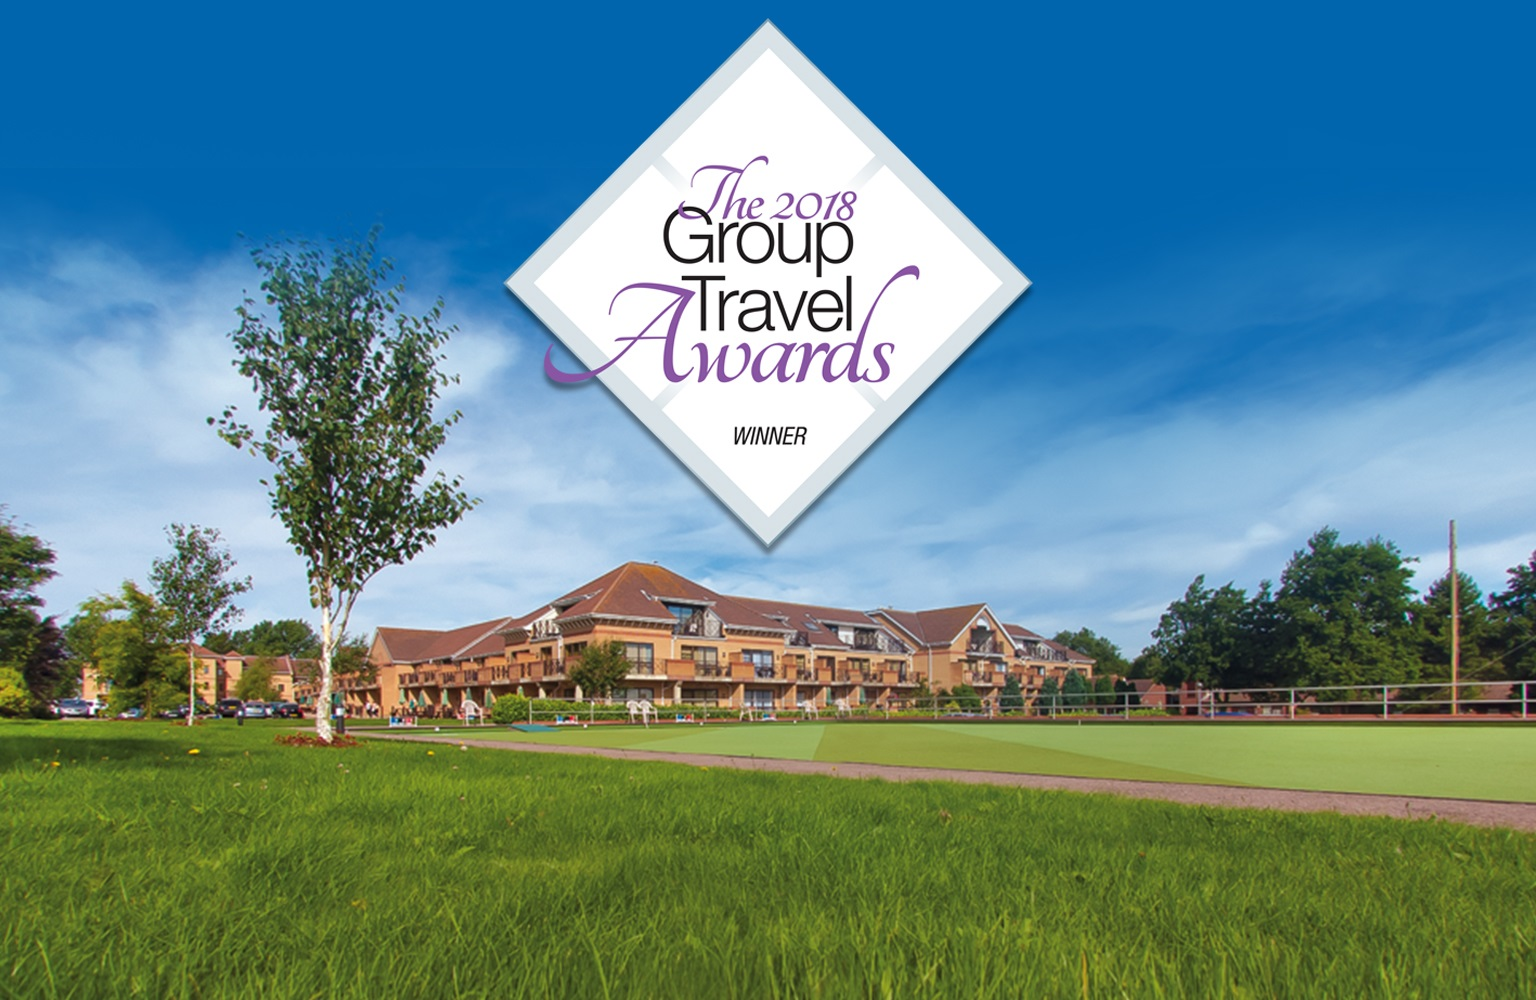 Potters recognised as leading group holiday provider at national awards